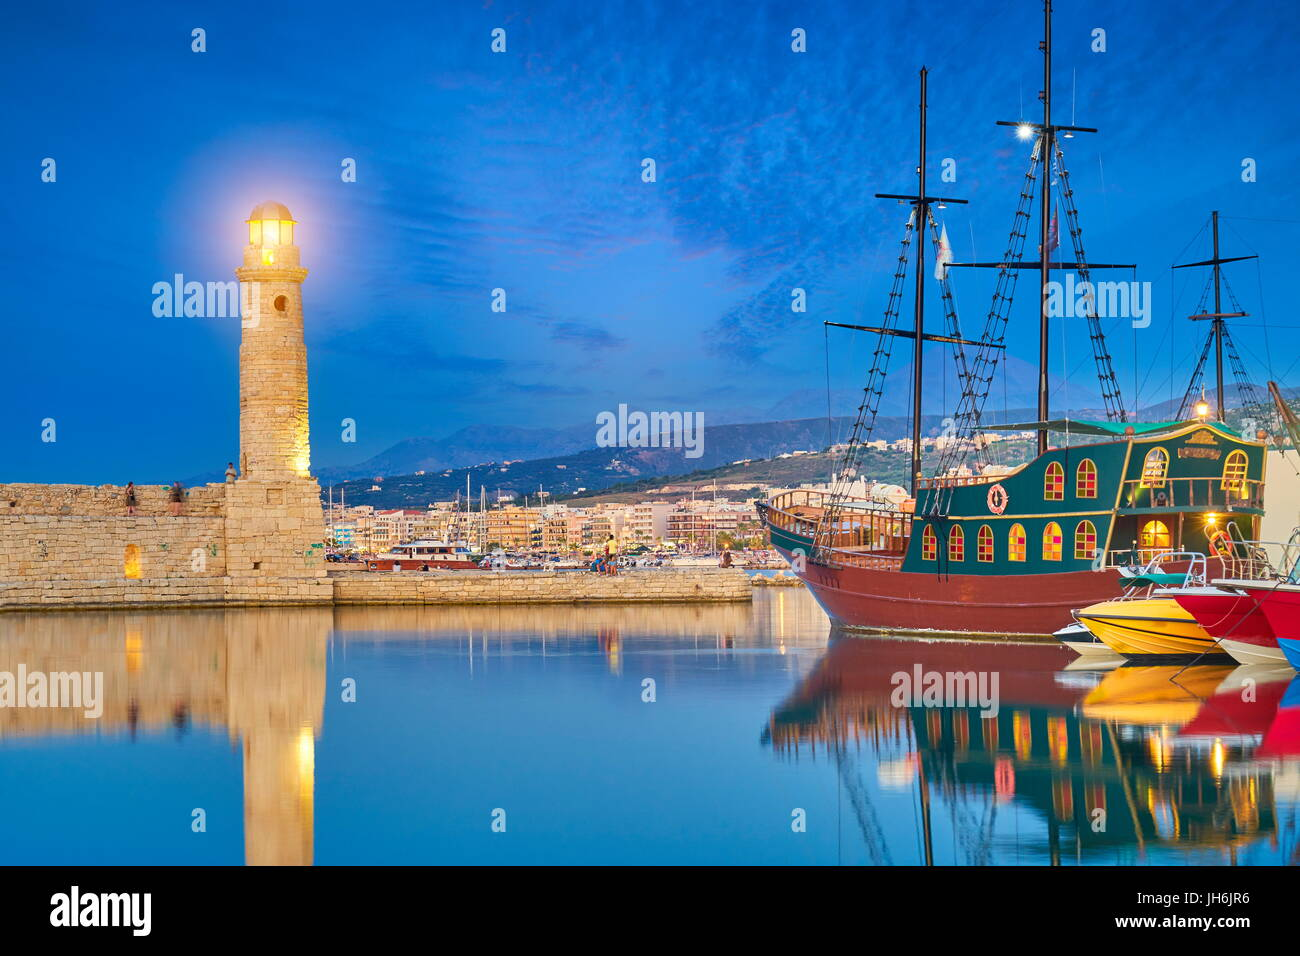 Lighthouse at Old Venetian Port, Rethymno, Crete Island, Greece Stock Photo